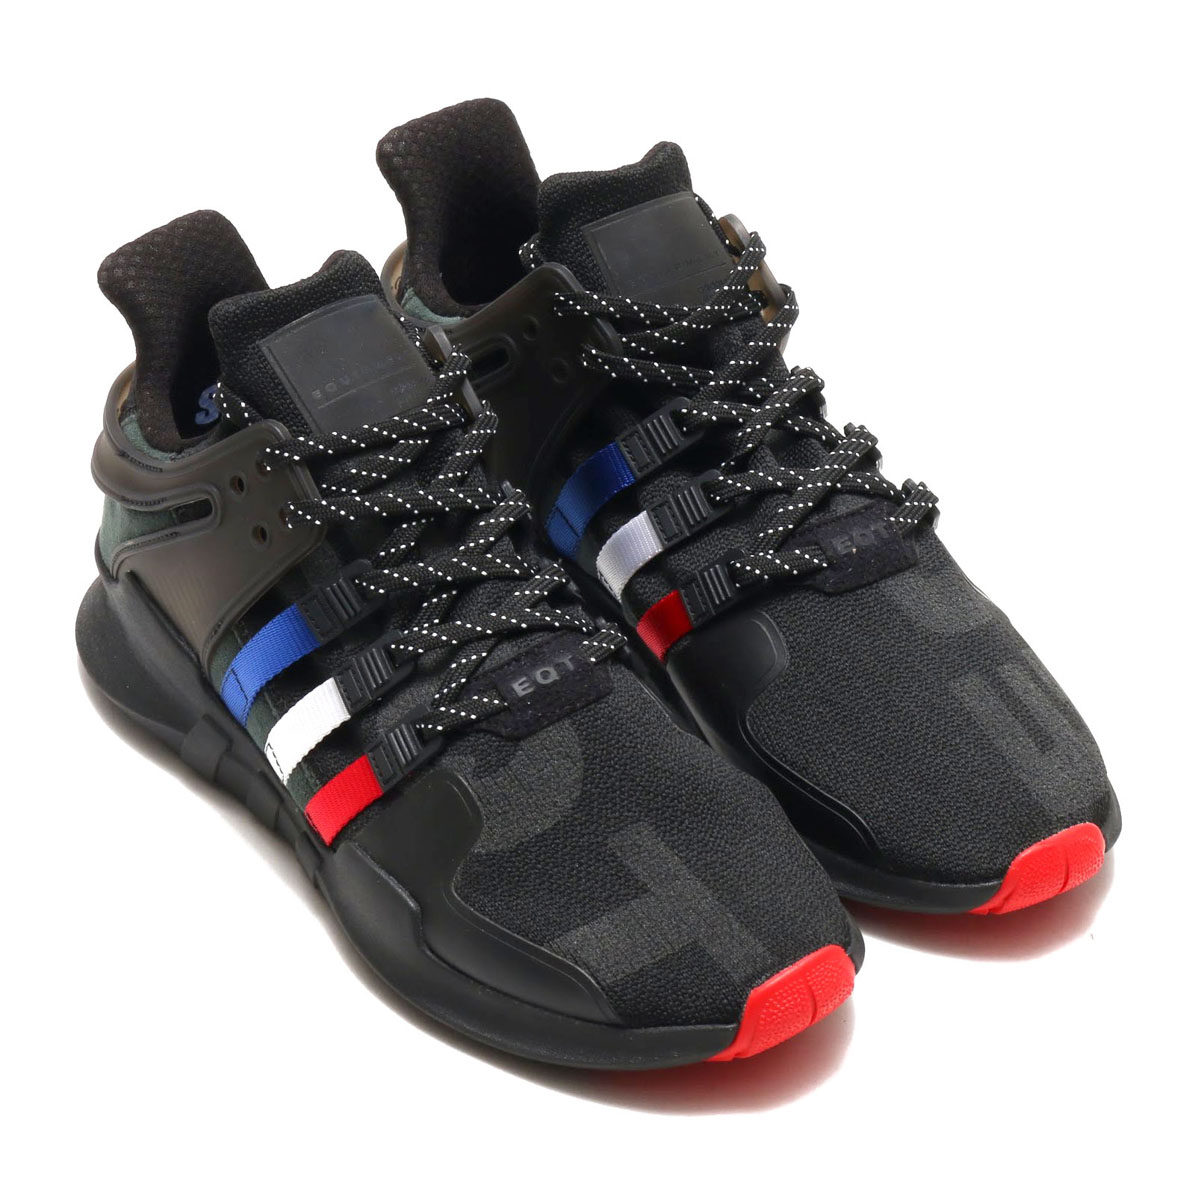 cheap for discount 54488 b051d adidas EQT SUPPORT ADV ATMOS (Adidas E cue tea support ADV atto- MOS) Core  Black/Running White/Core Black 18SS-S